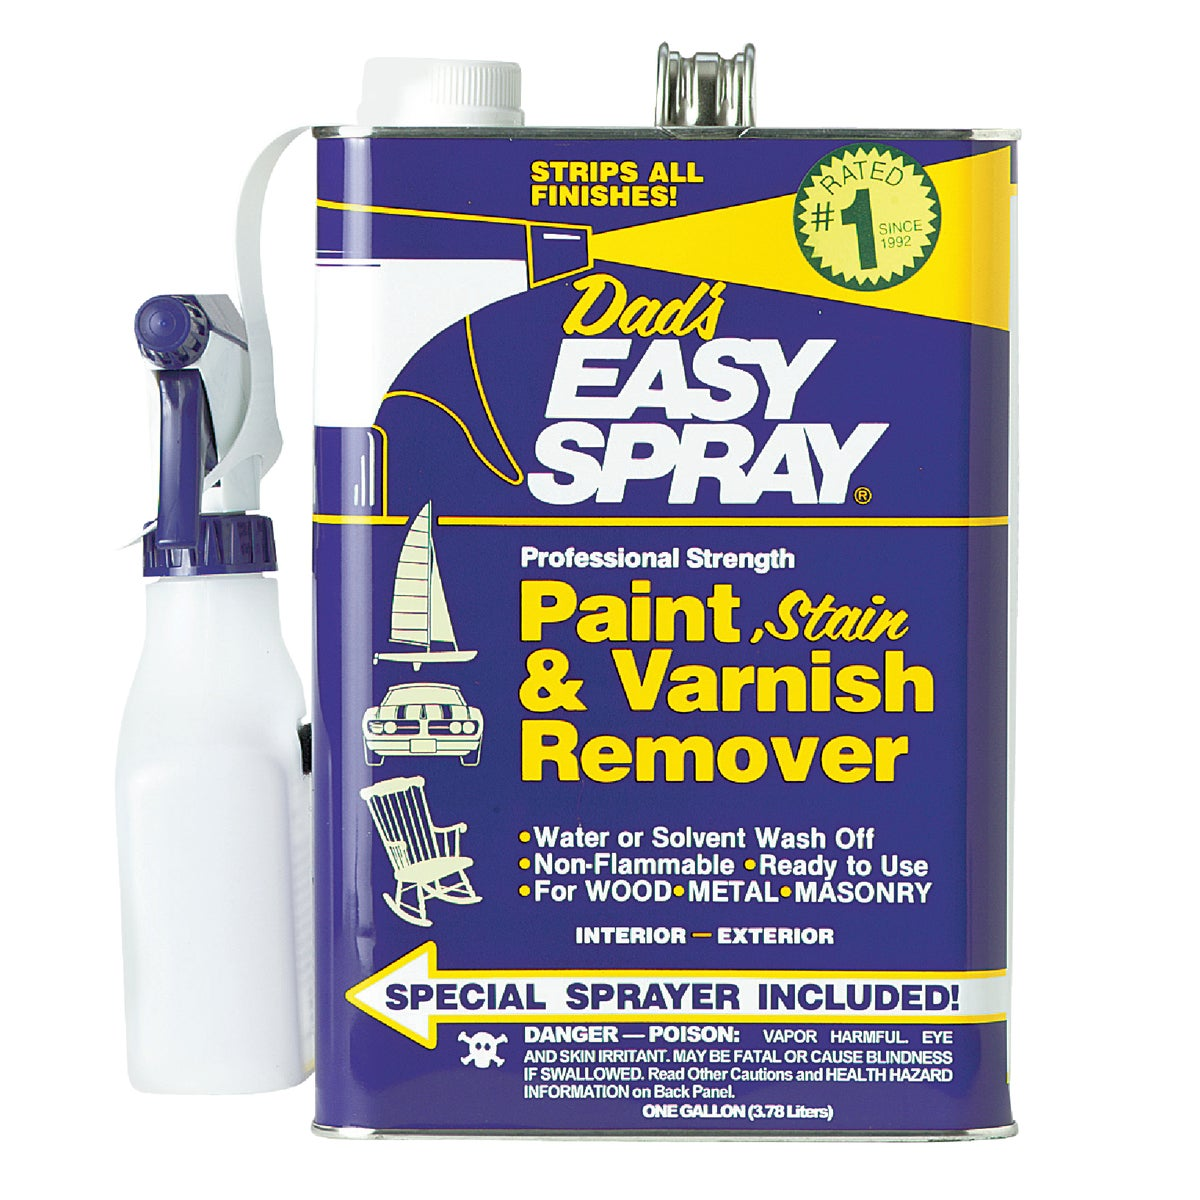 GAL DAD'S SPRAY REMOVER - 33831 by Sansher Corp